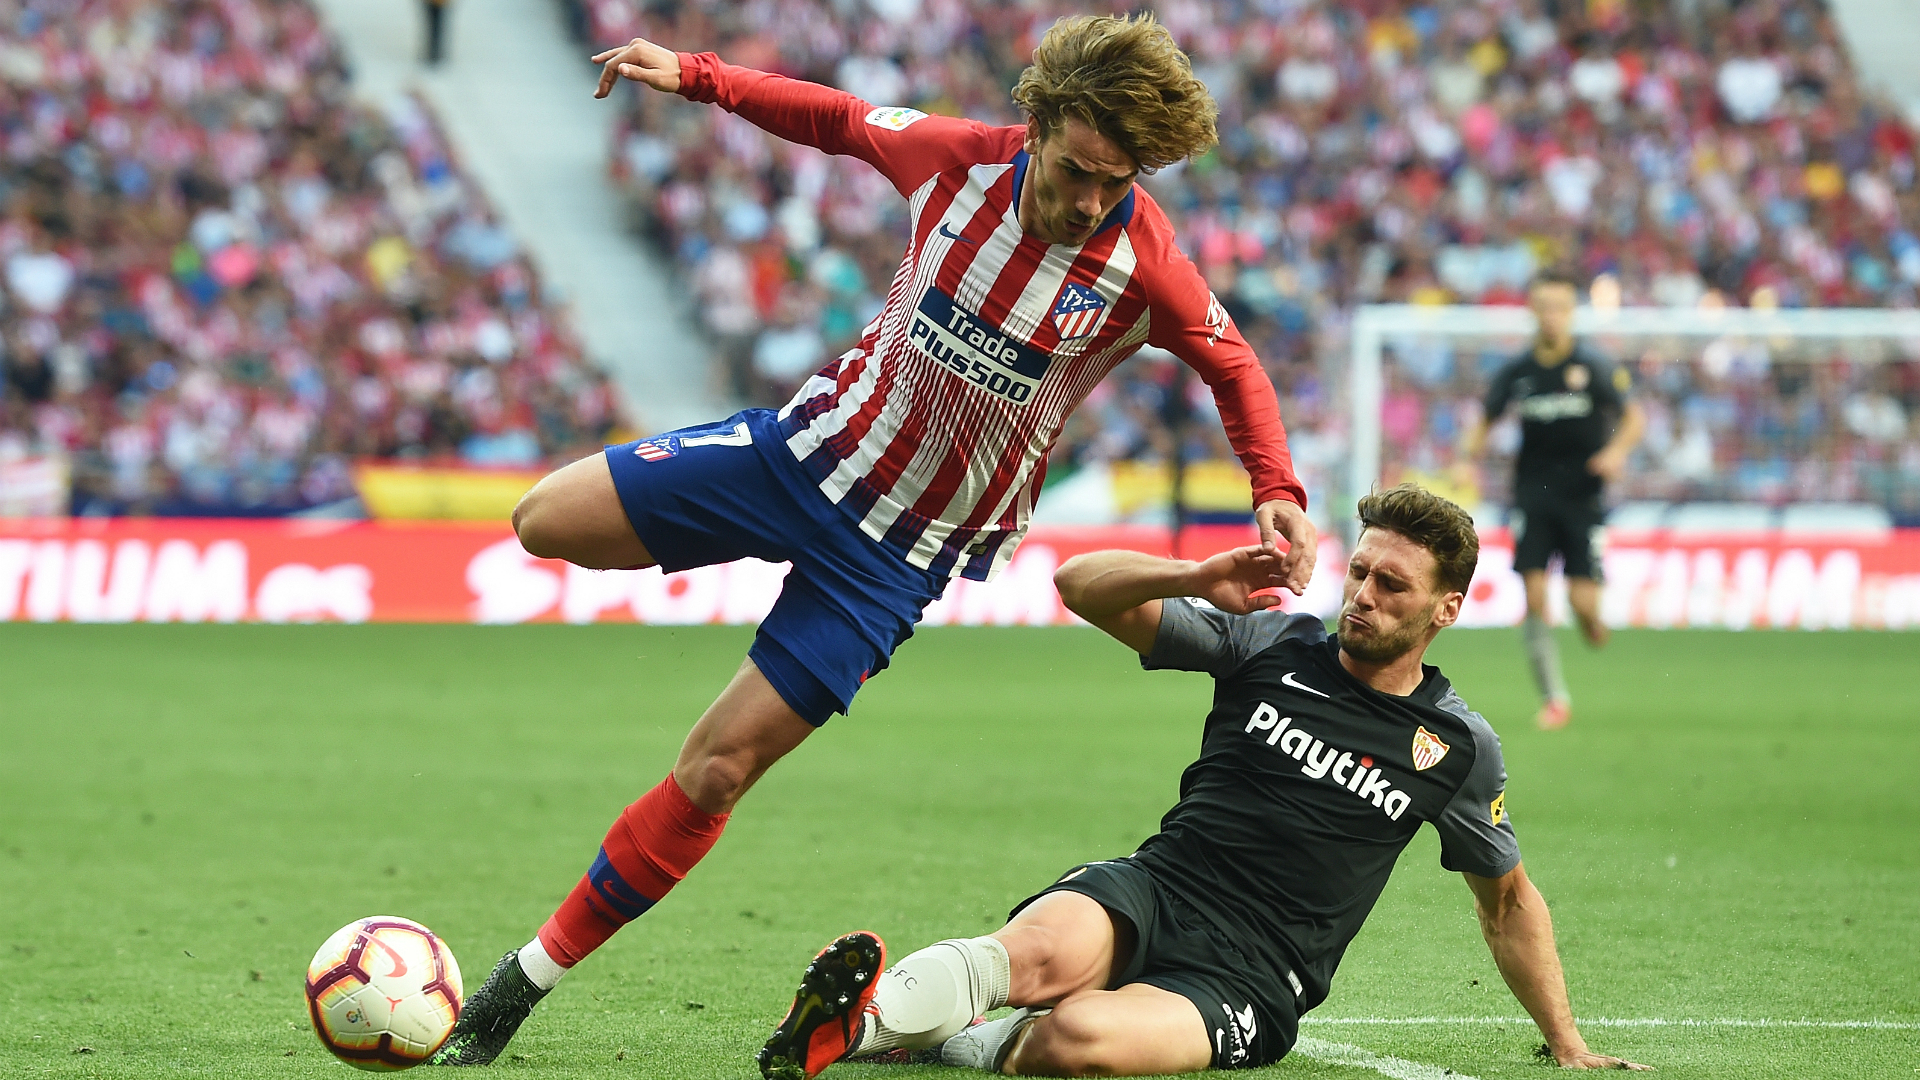 Godin has earned his place among Atletico Madrid greats, says Simeone